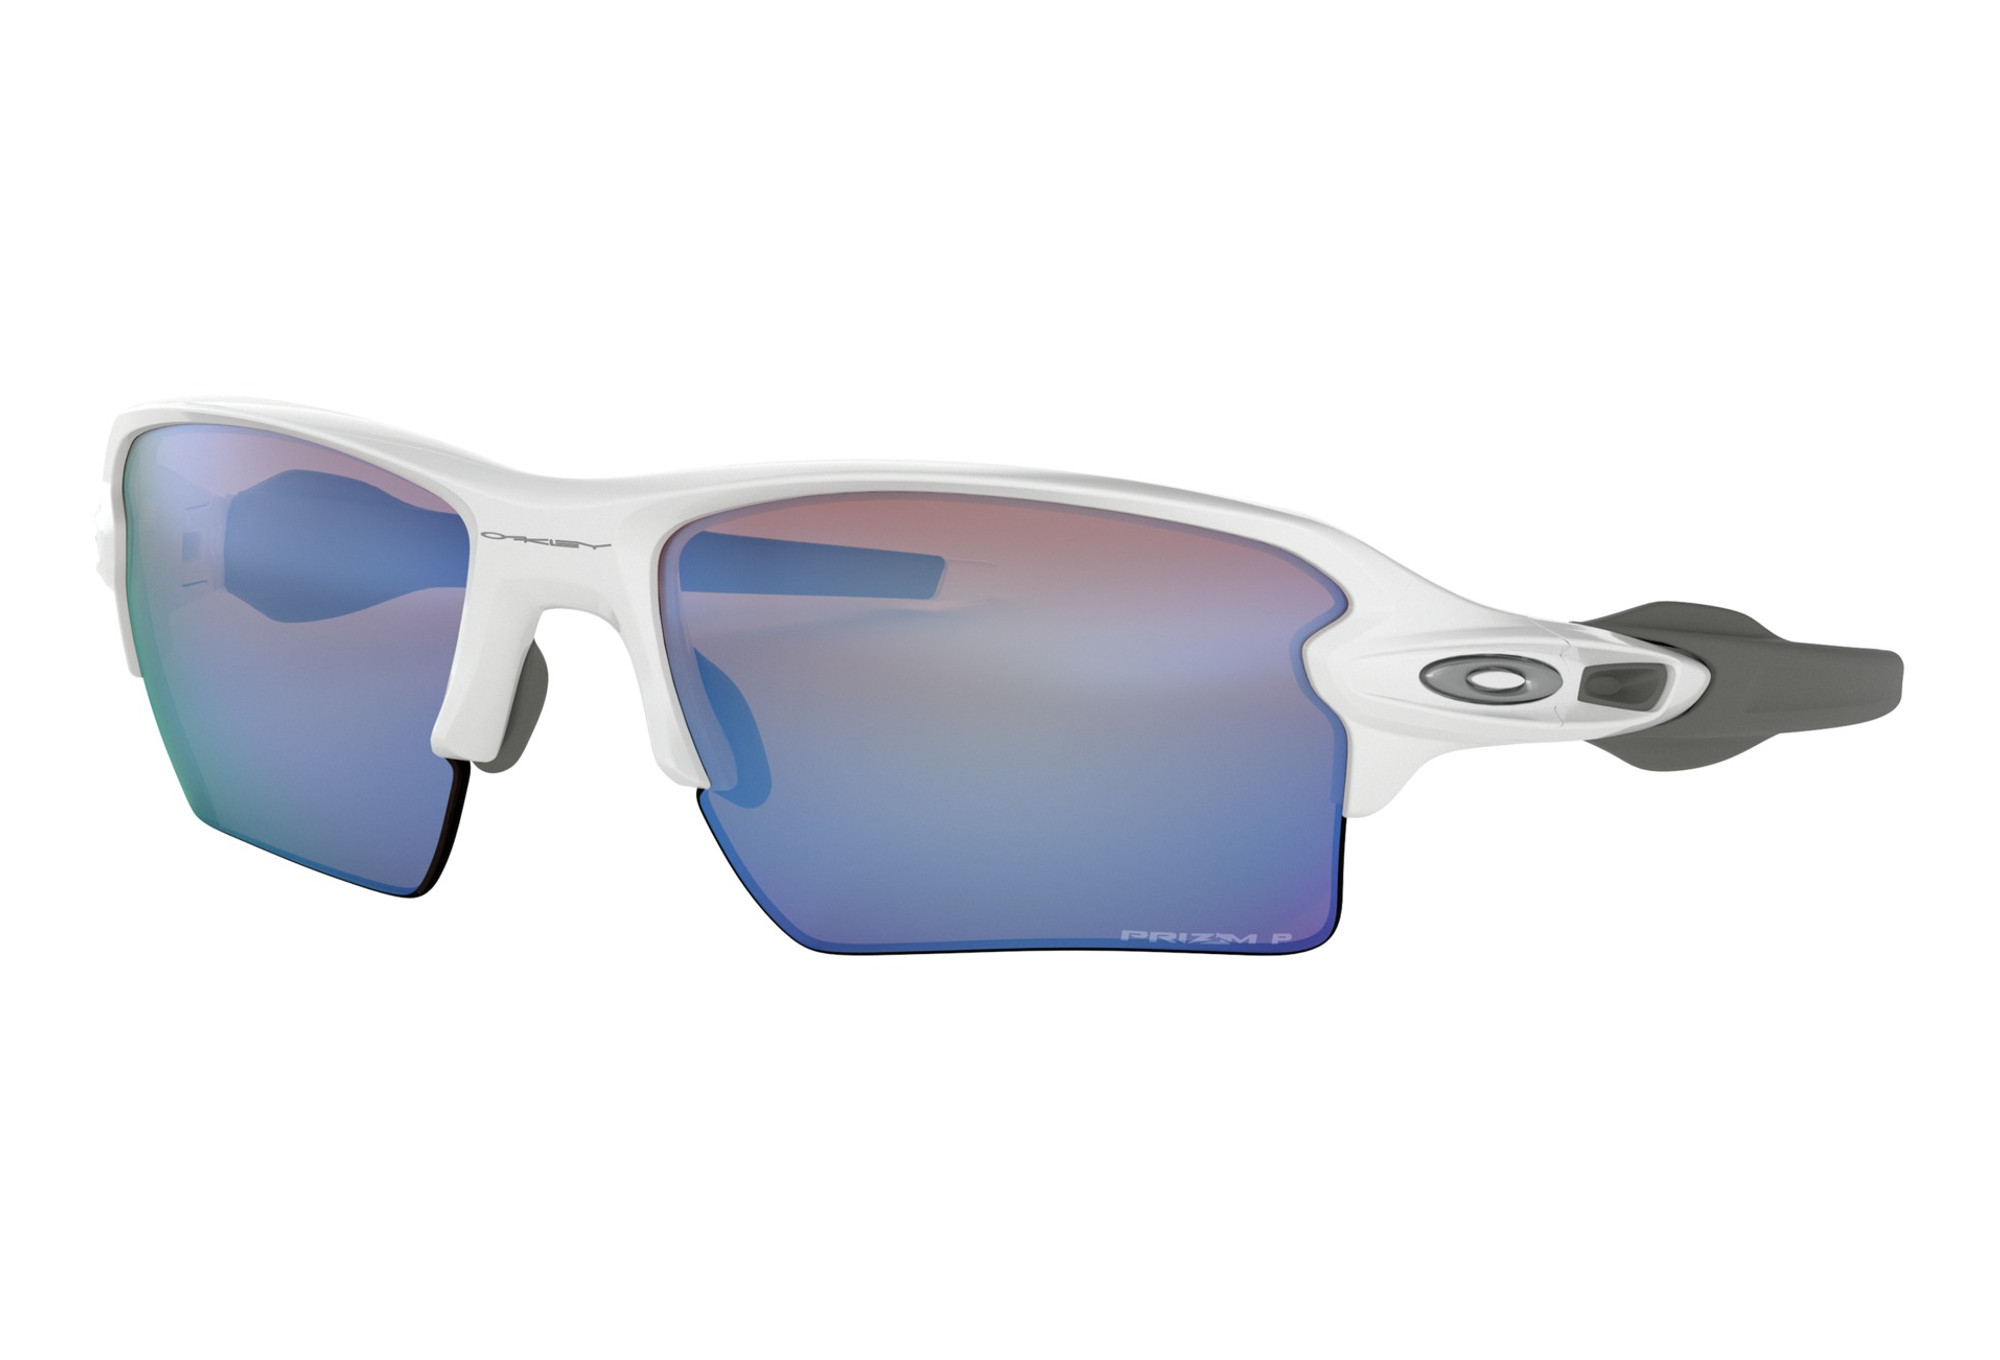 ccc2b4b6d3 Oackley Flak 2.0 XL Glasses White - Prizm Deep Water Polarized OO9188-8259